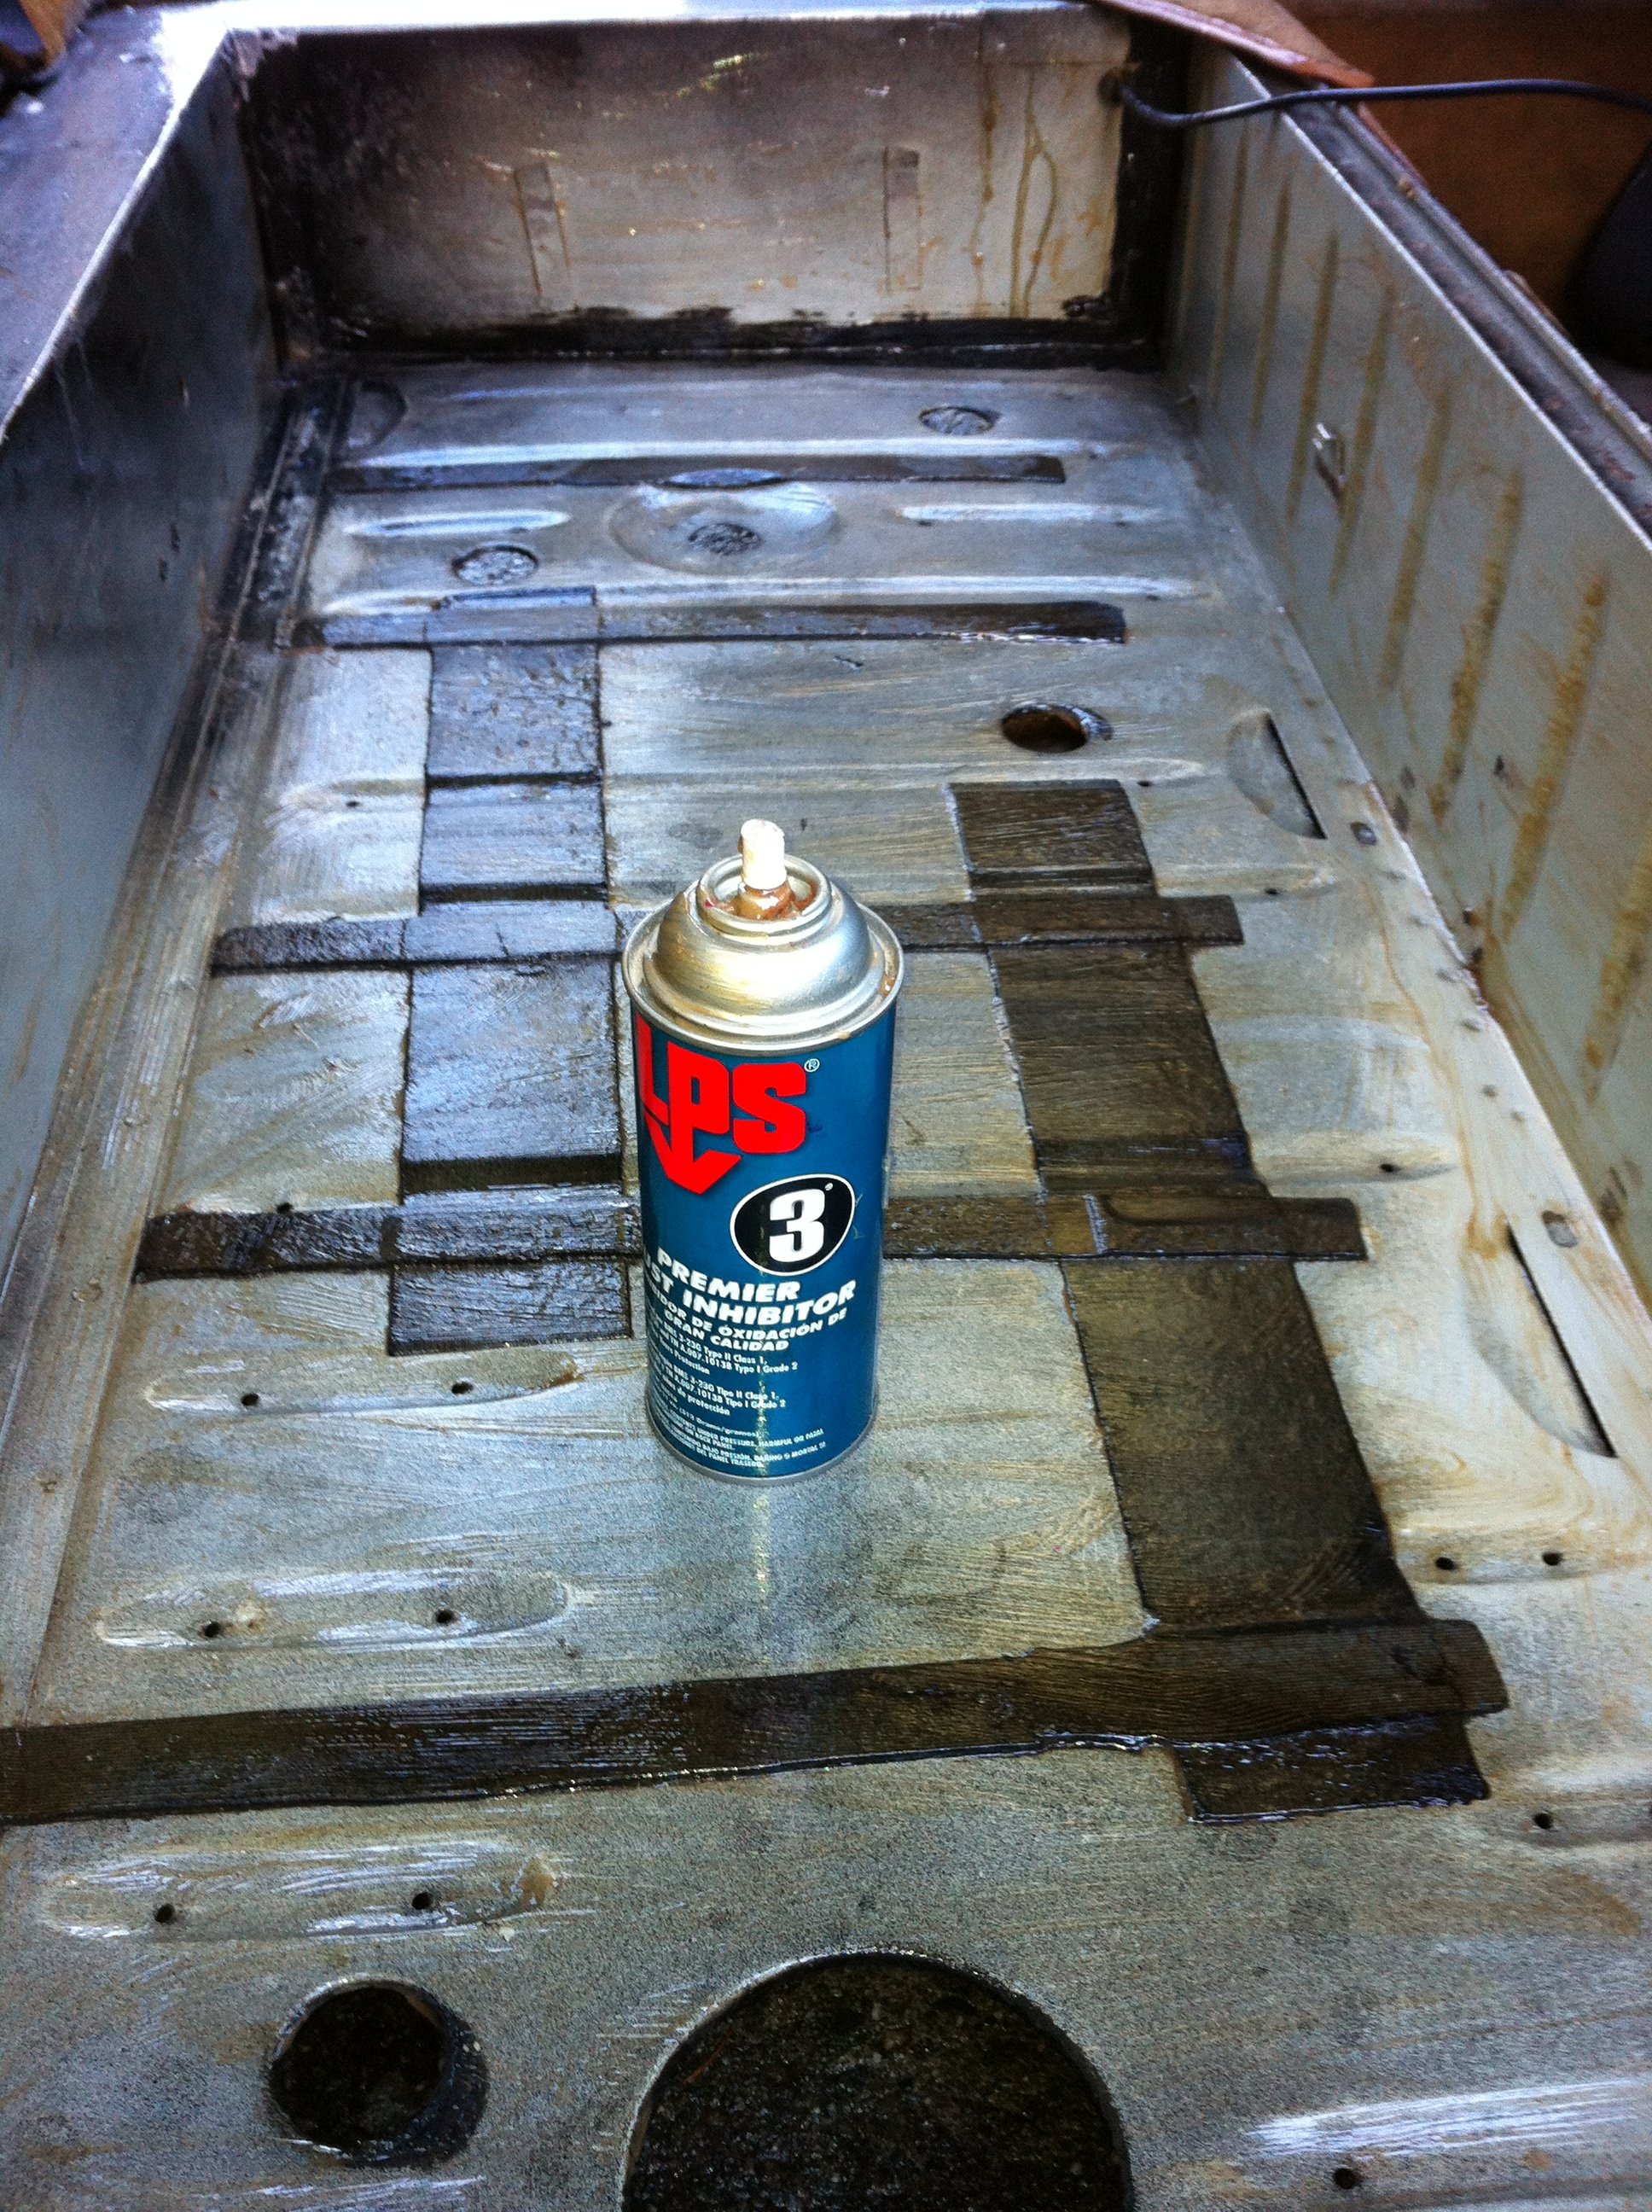 Prior to installing fuel tank, I apply LPS-3 to the fuel tank bay.